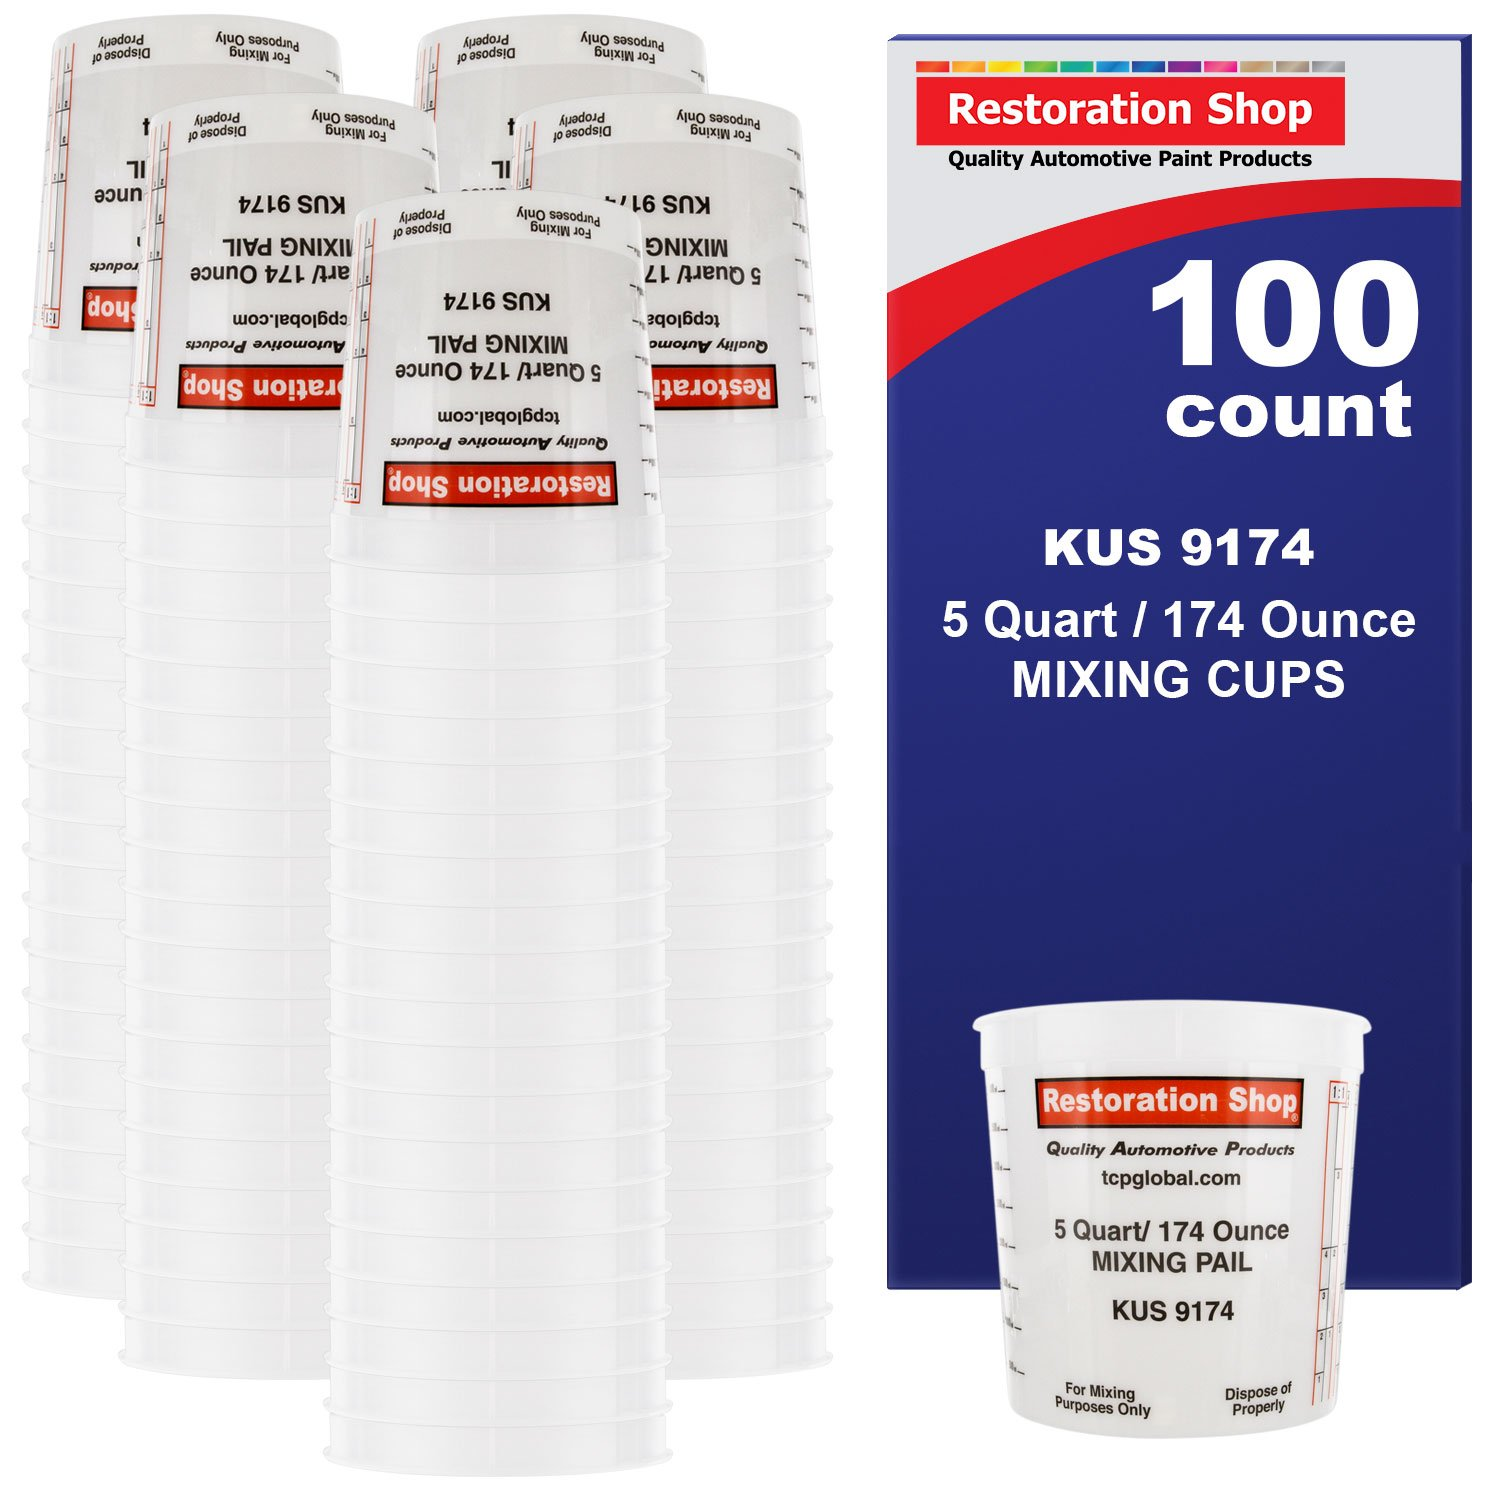 BOX of 100 each - 174Ounce PAINT MIXING CUPS/BUCKETS = 5 QUART Bucket) by Restoration Shop - Cups have calibrated mixing ratios on side of cup BOX of 100 Paint and Epoxy Mixing Cups by Custom Shop